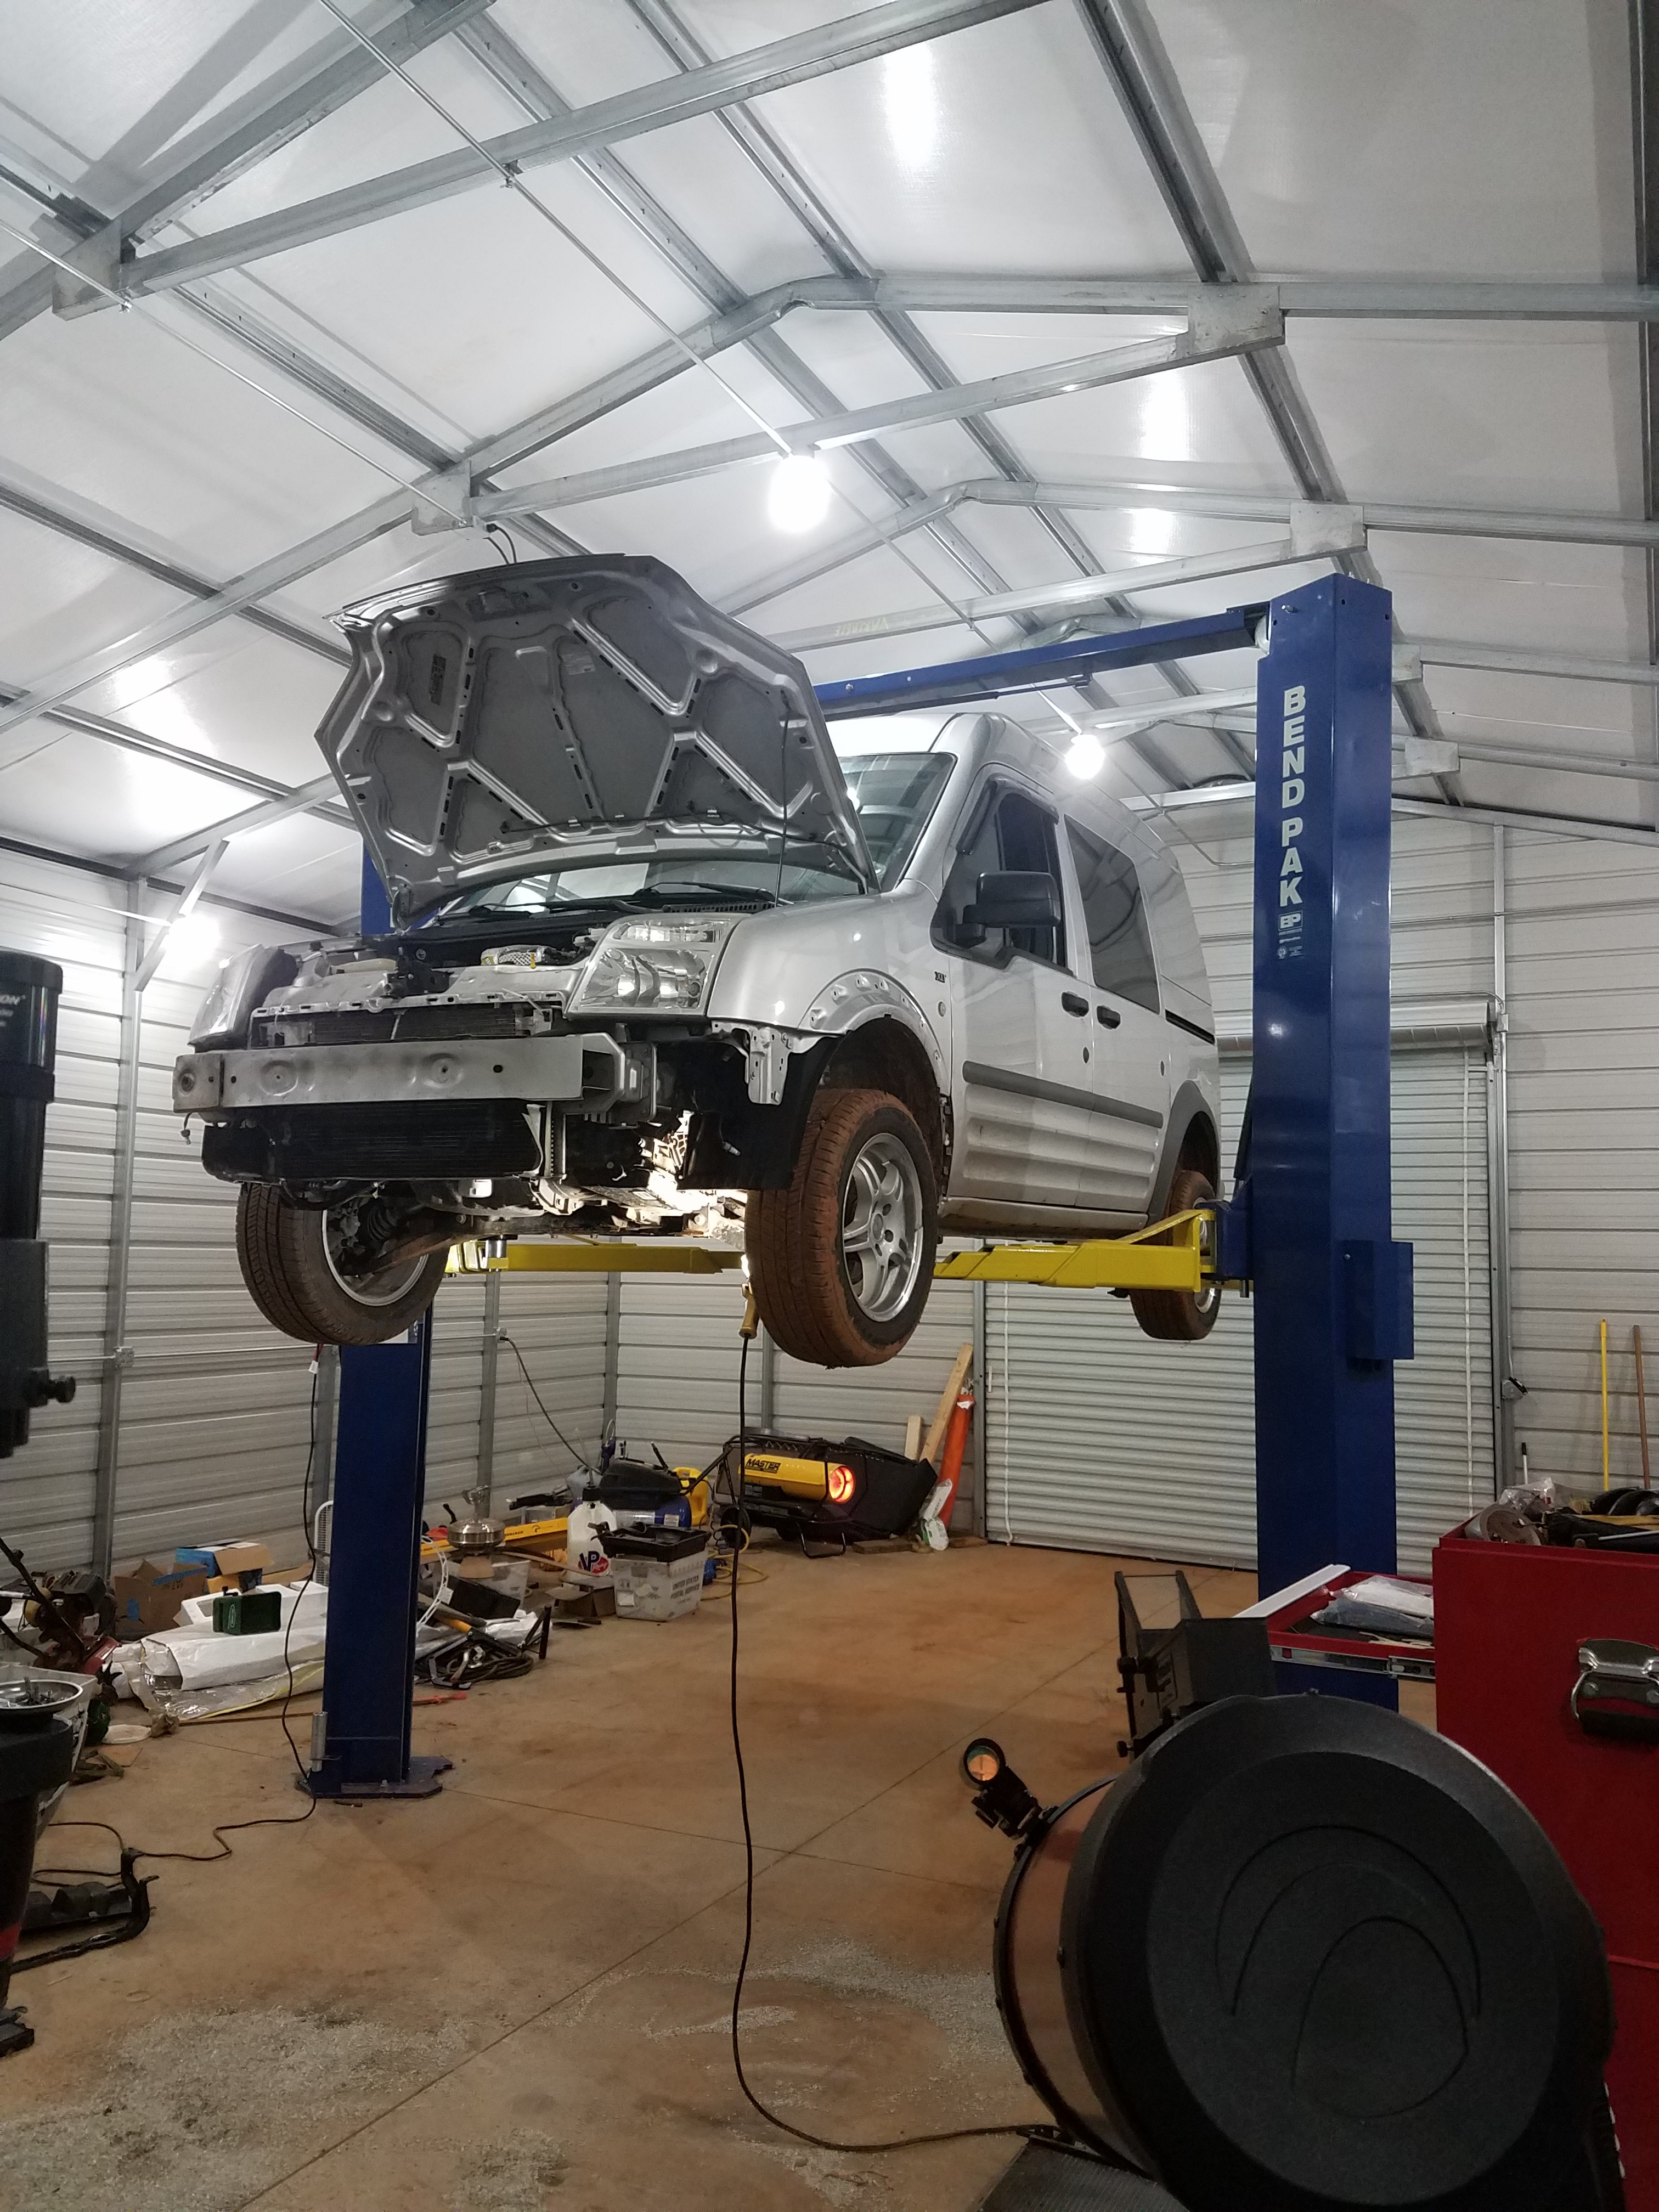 How The Heck Do You Jack One Of These Things Up Brakes Chassis Suspension Ford Transit Connect Forum